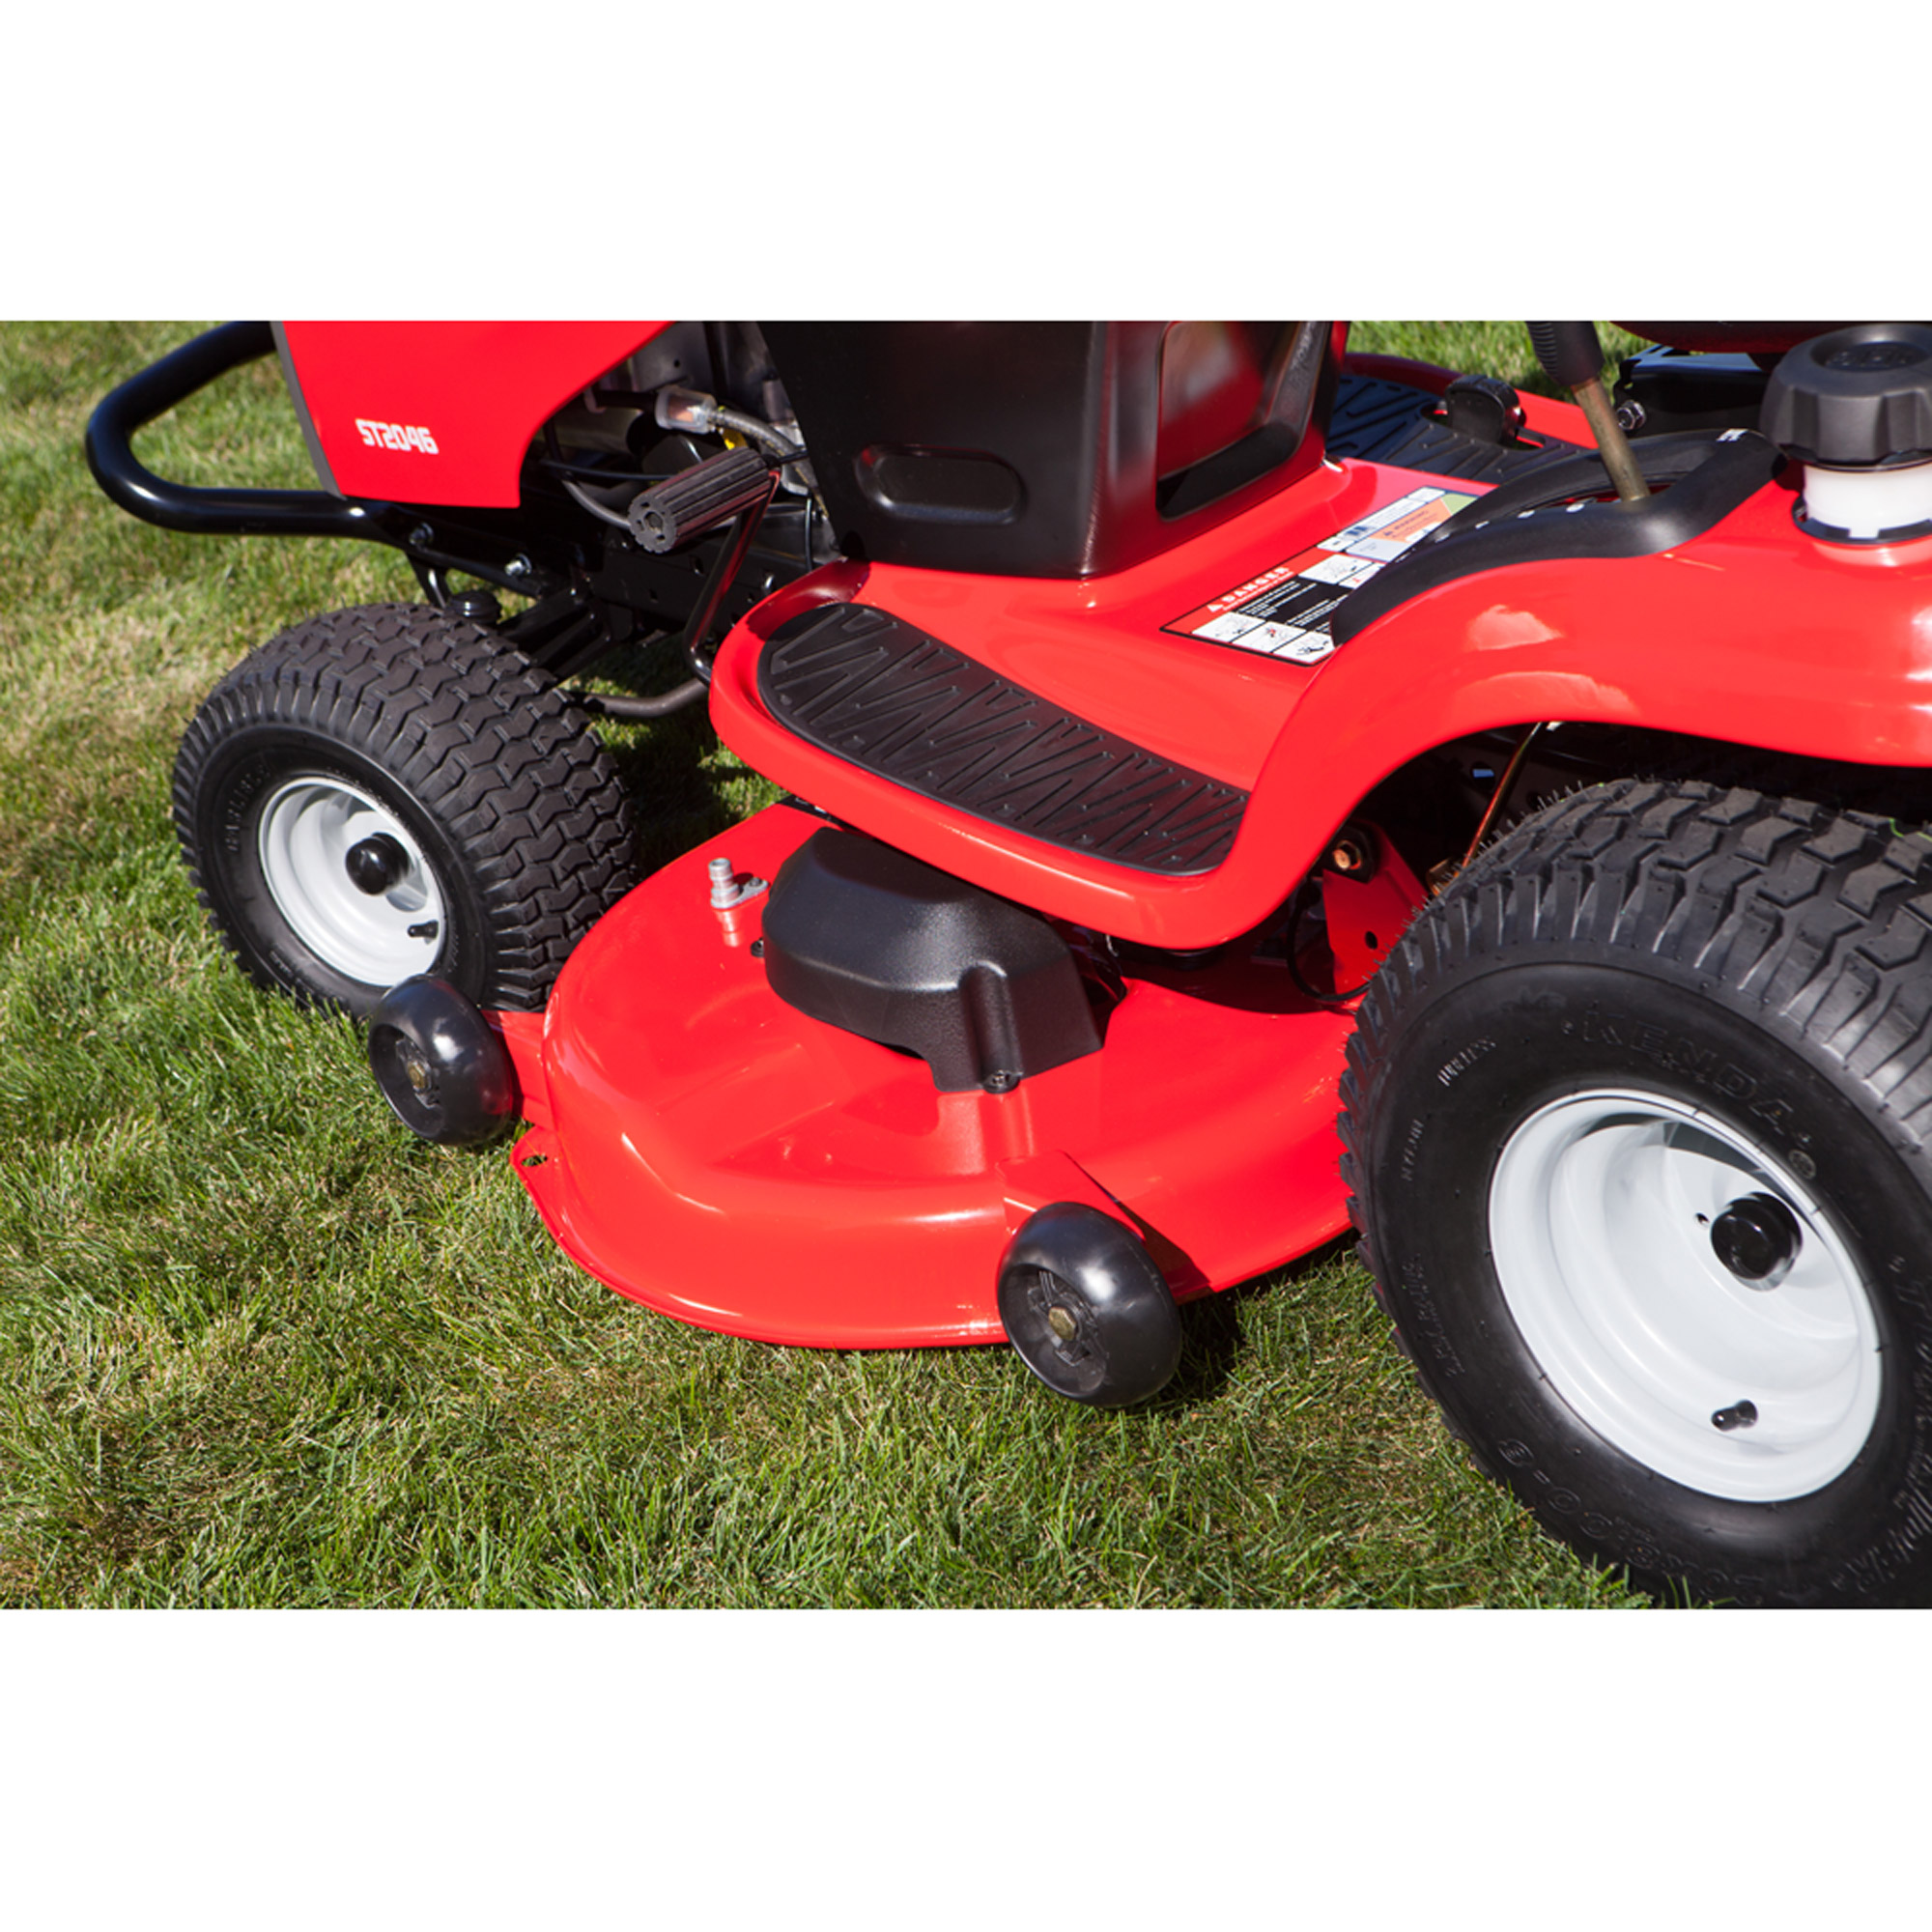 "Snapper 46"" 20HP Briggs & Stratton (V-Twin) Front Engine Riding Mower -  Walmart.com"